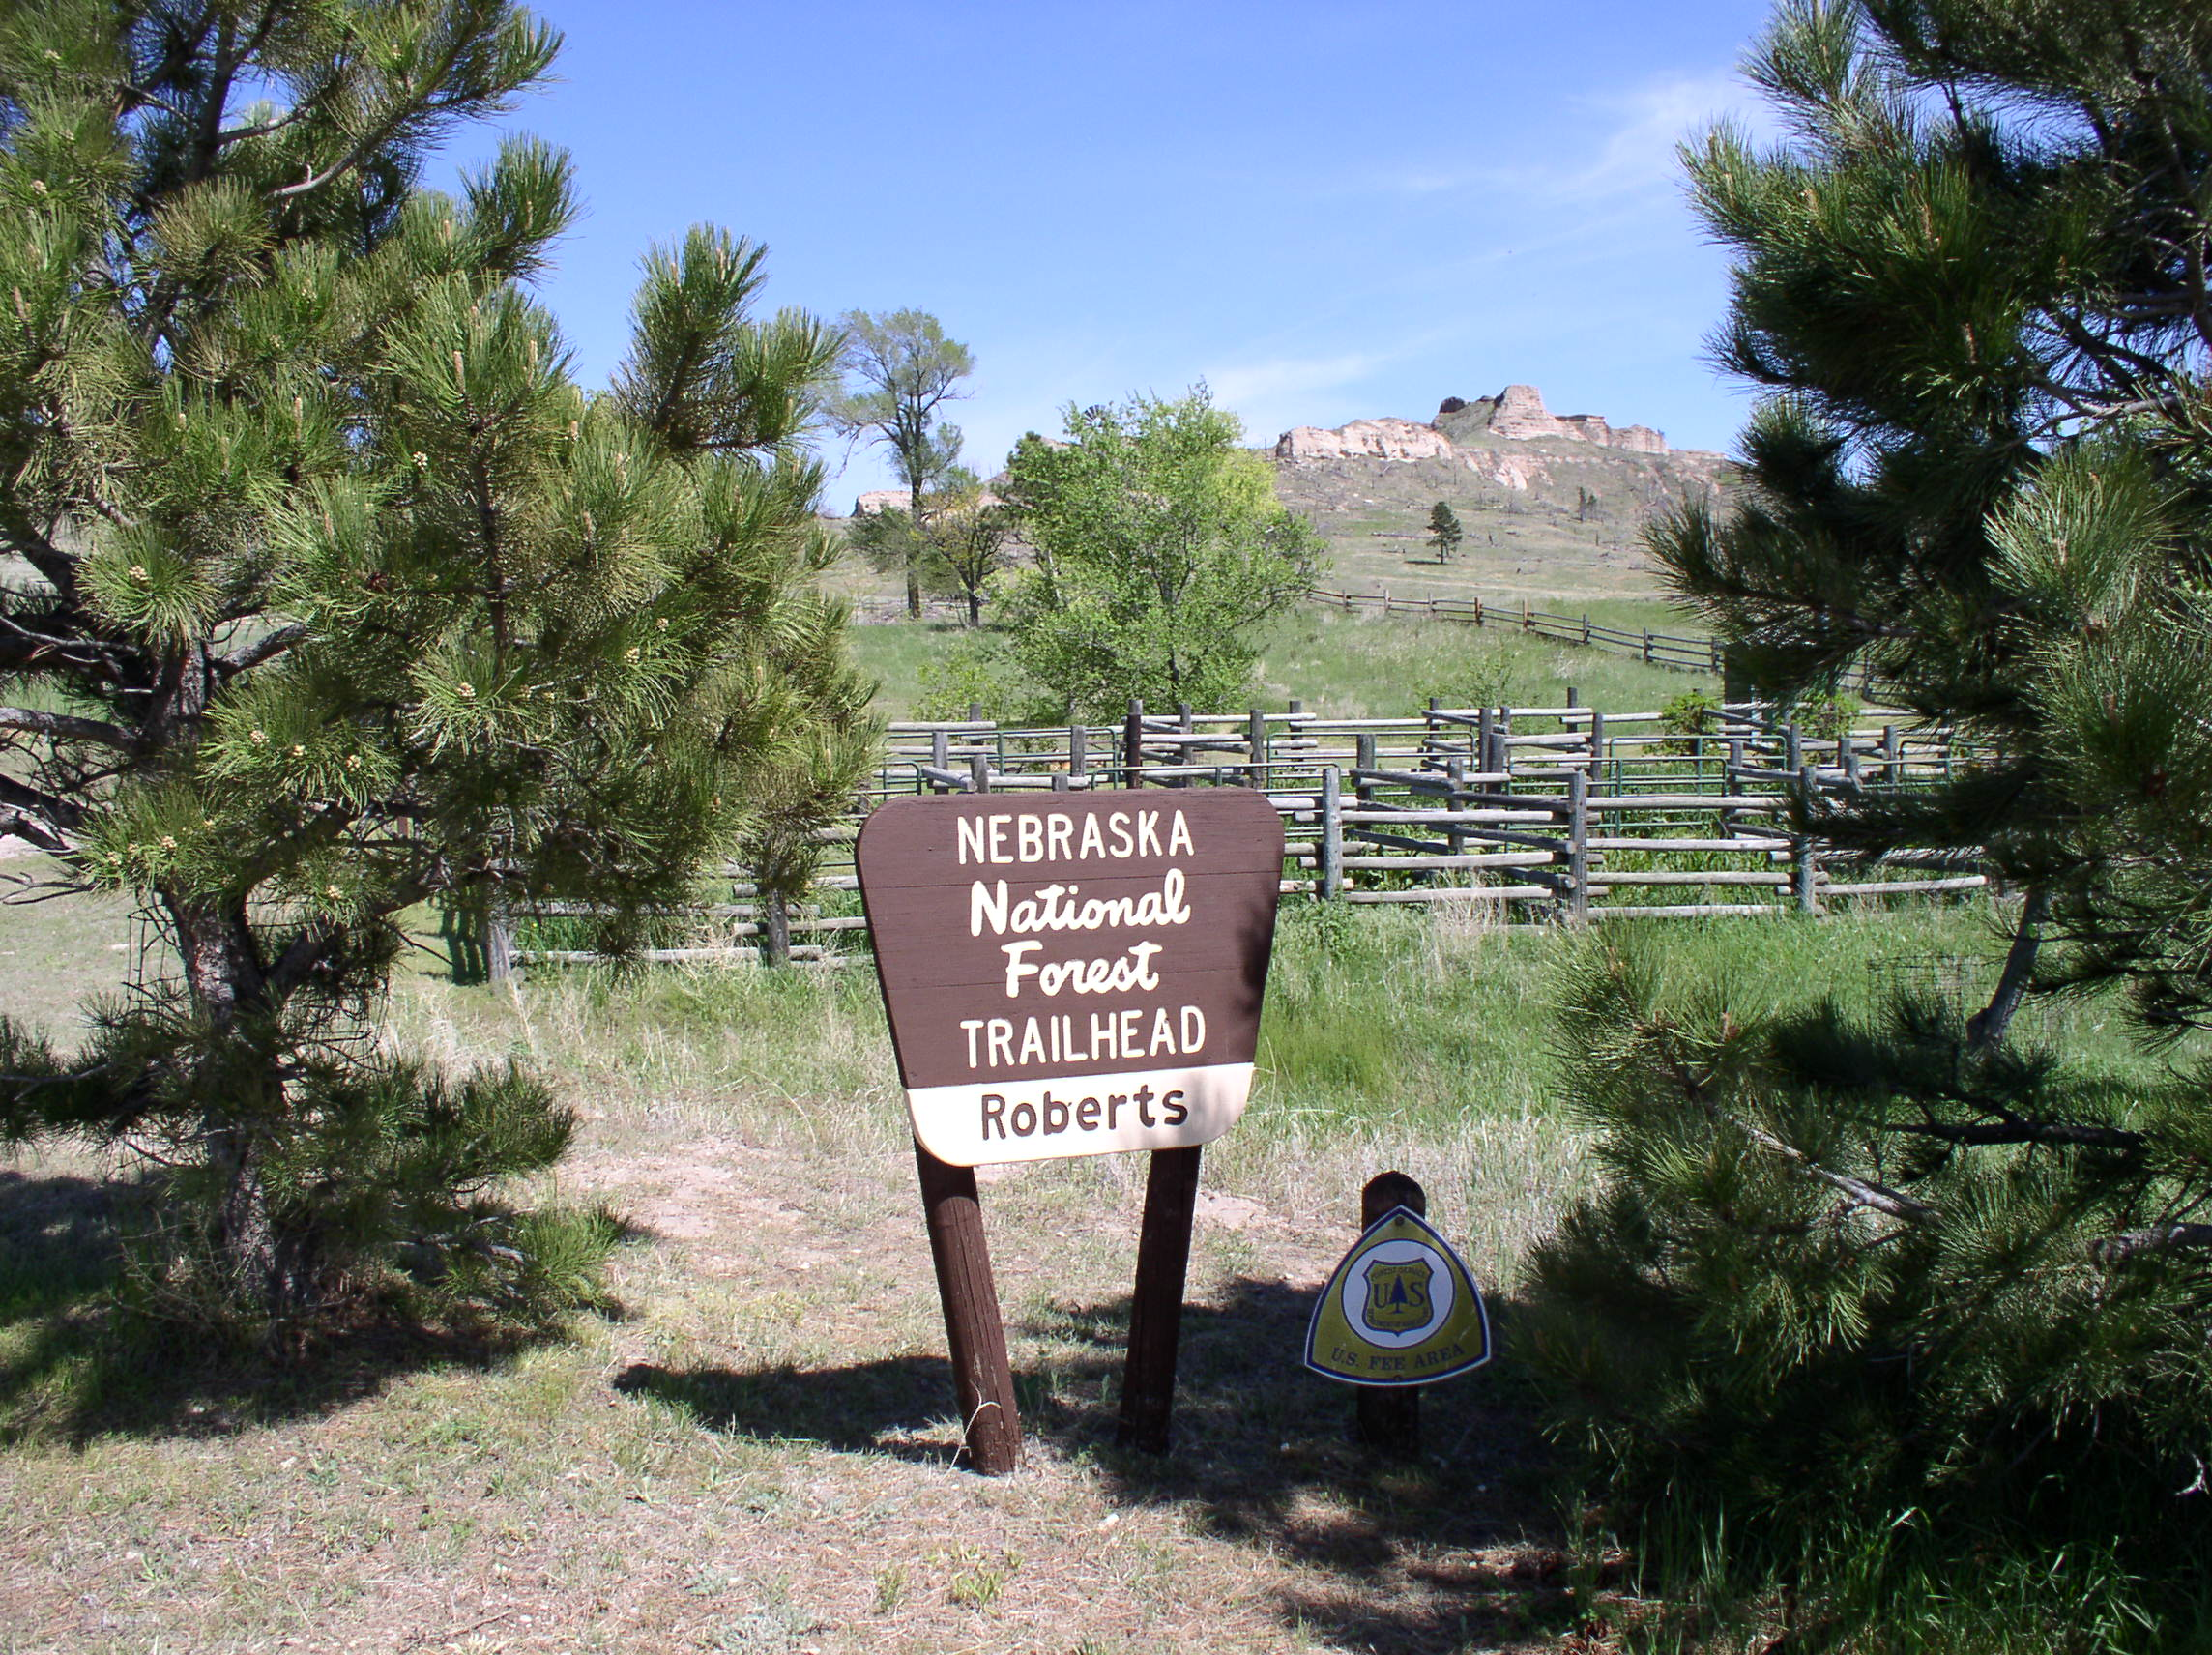 Roberts Trailhead and Campground sign